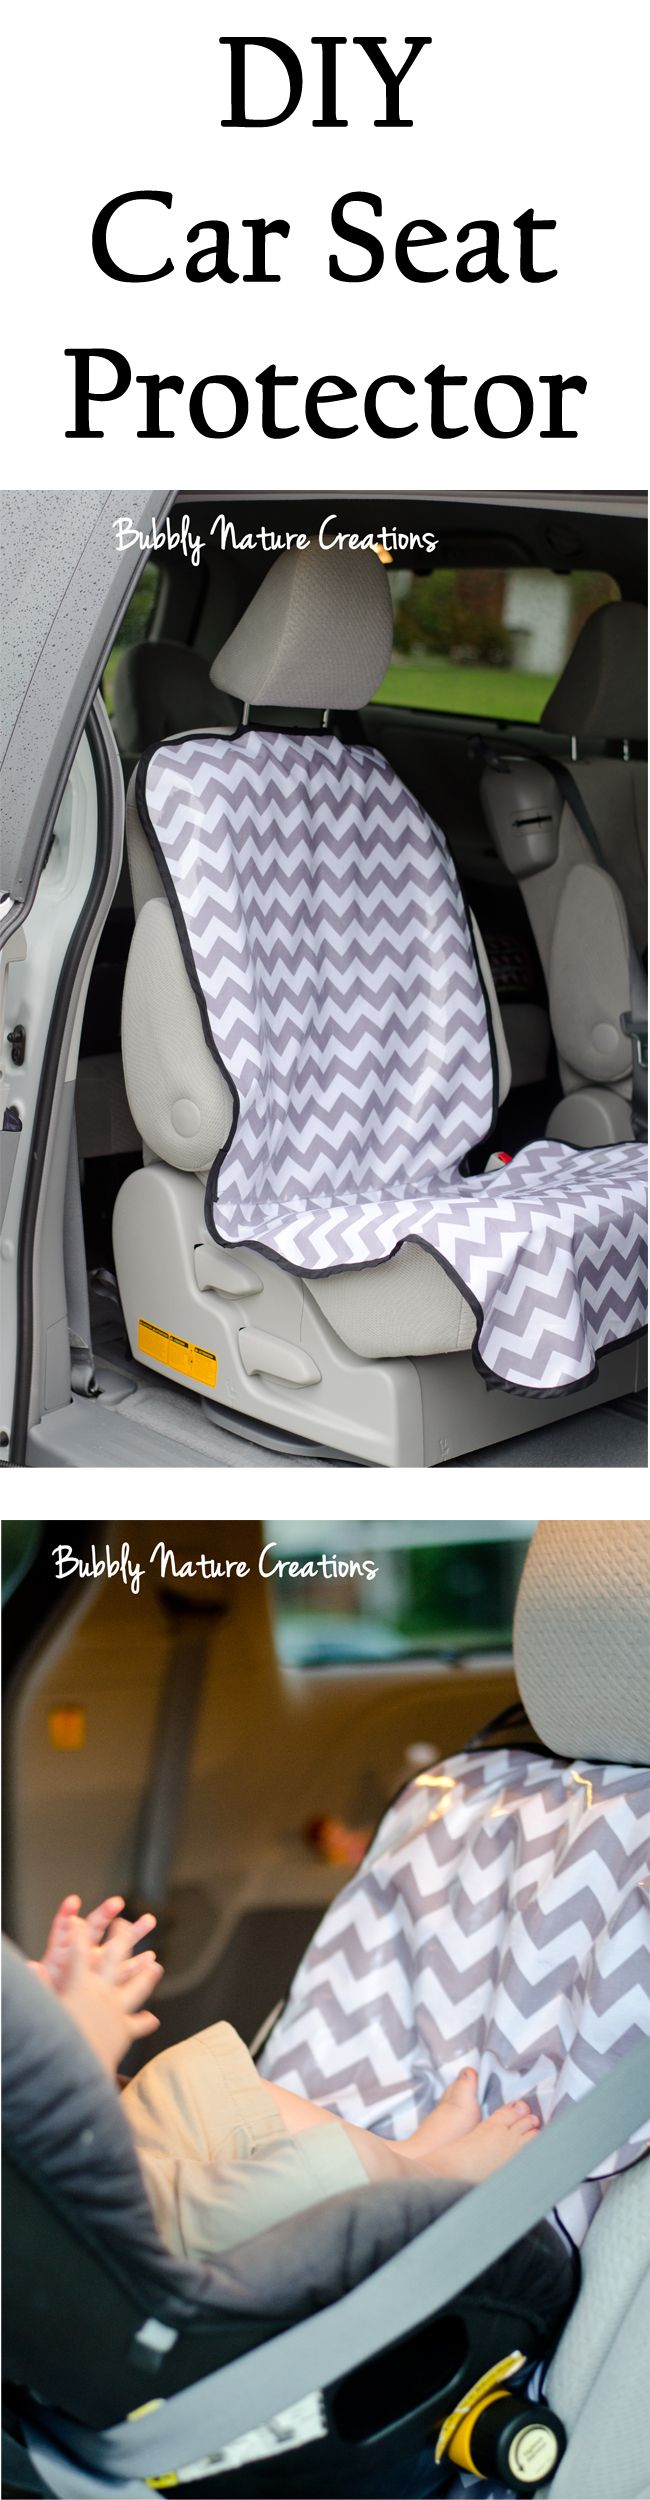 DIY Car Seat ProtectorCar Seats, Baby Carseat, Boosters Seats, Baby Car Seat, Baby Diy, Cars Seats Protector, Diy Cars, Shower Gift, Carseats